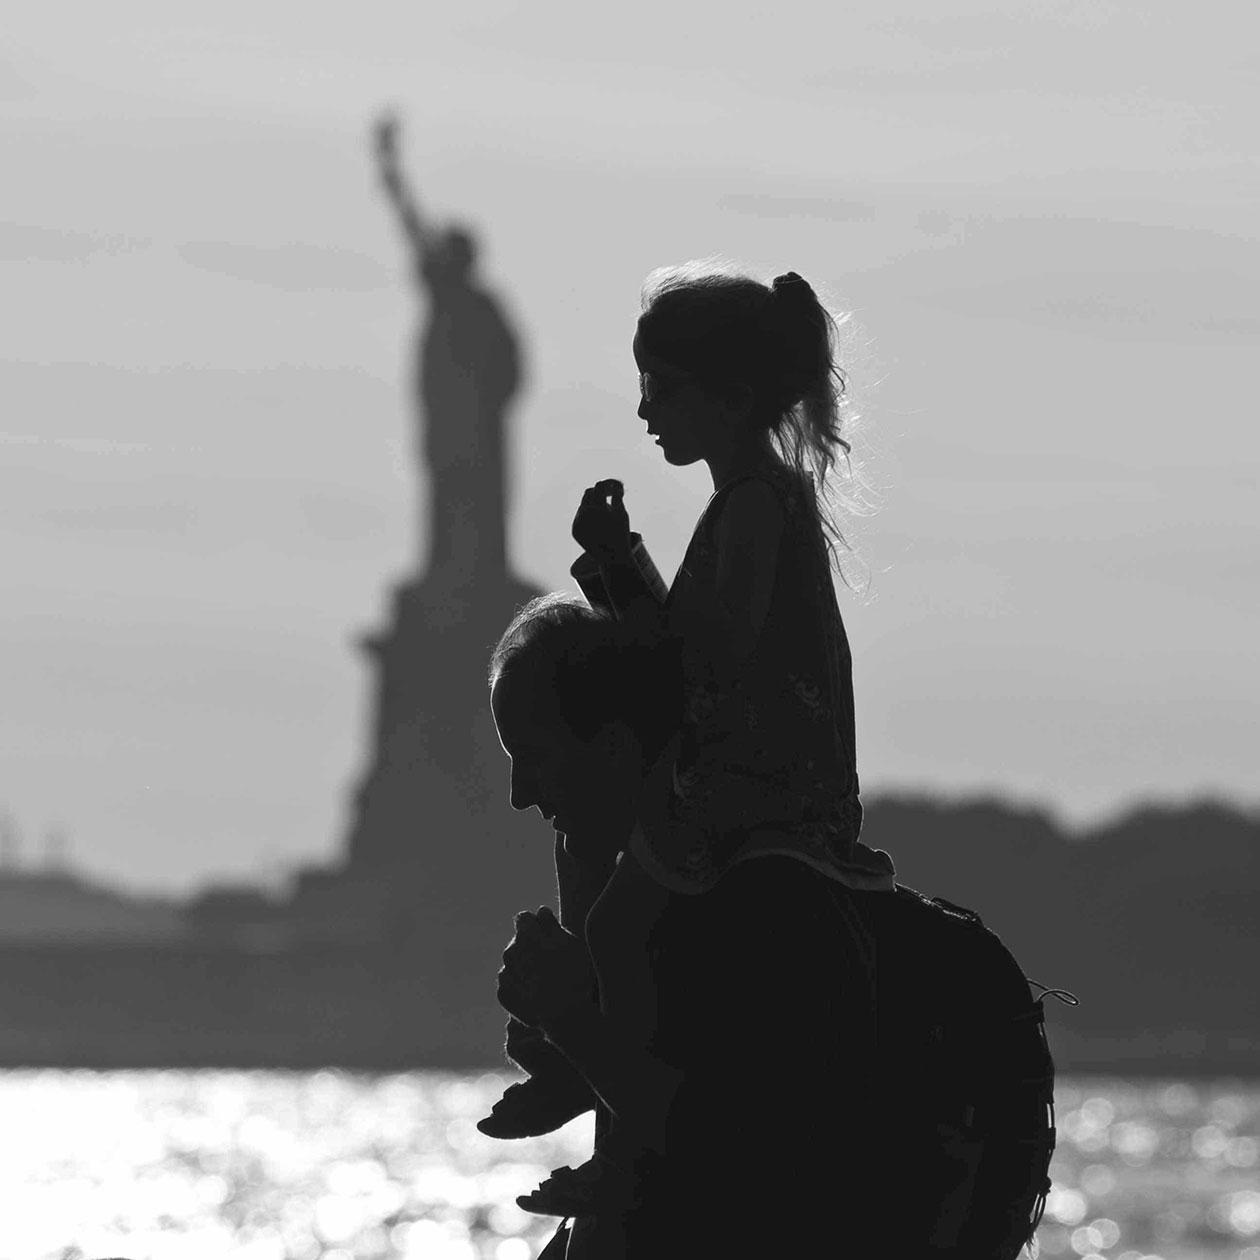 daughter on father's shoulders with Statue of Liberty in background